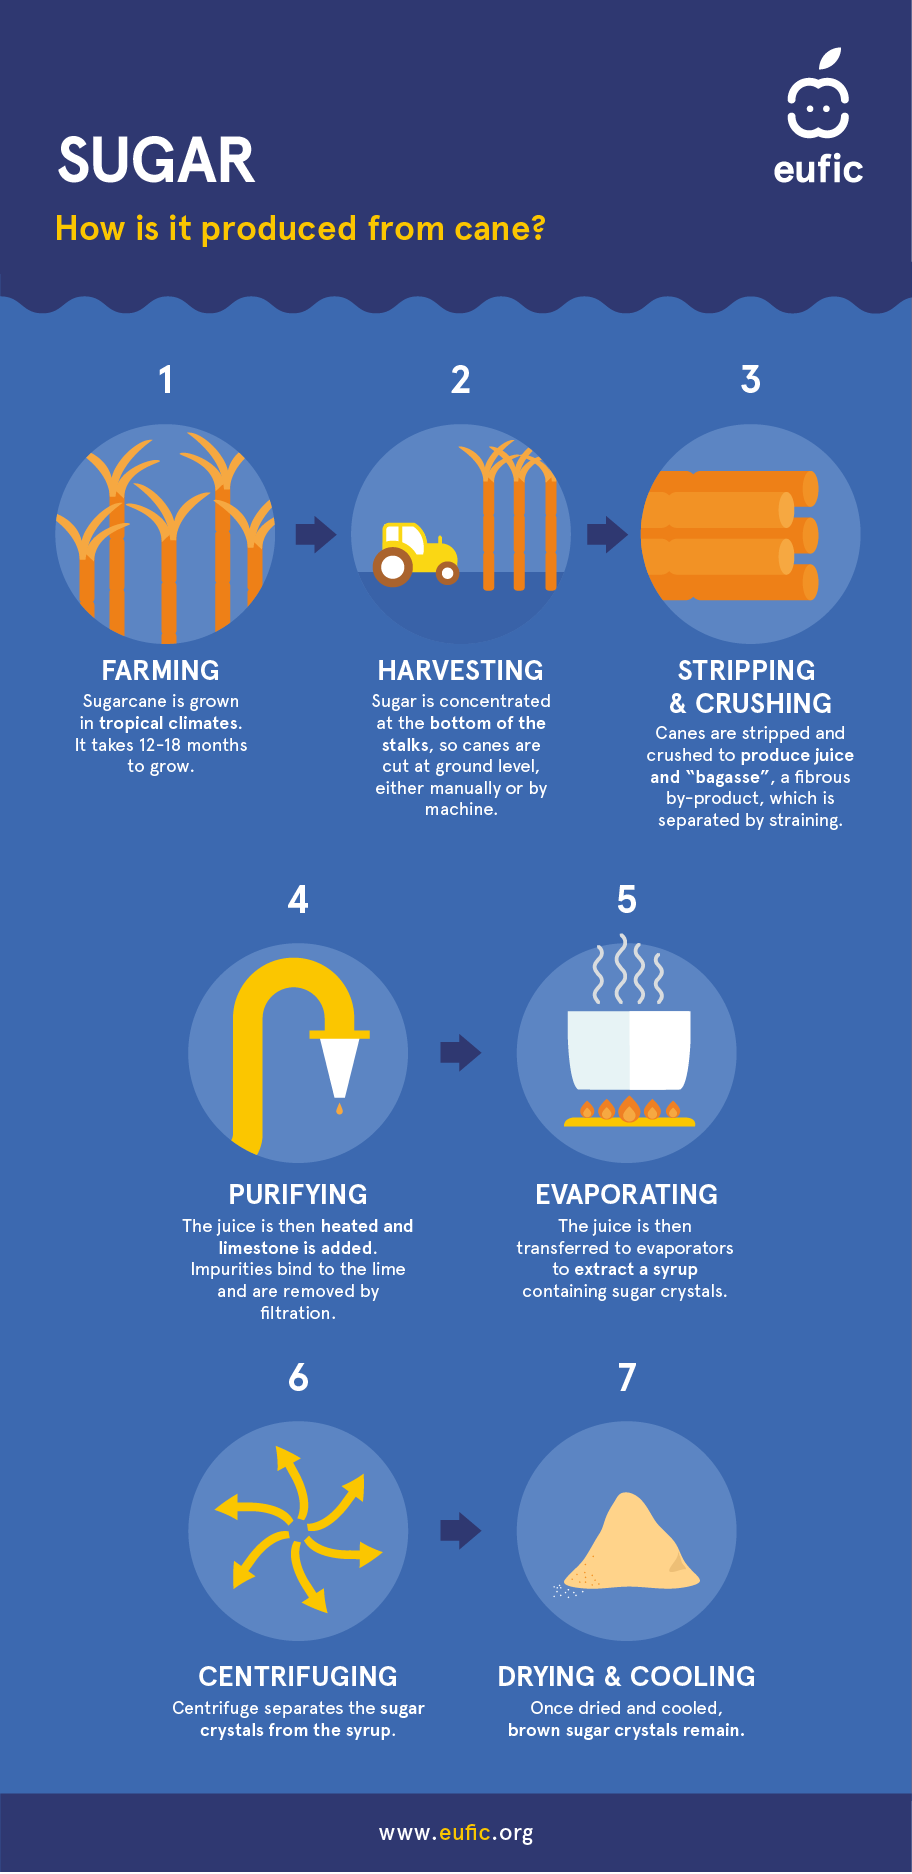 how to produce sugar from cane